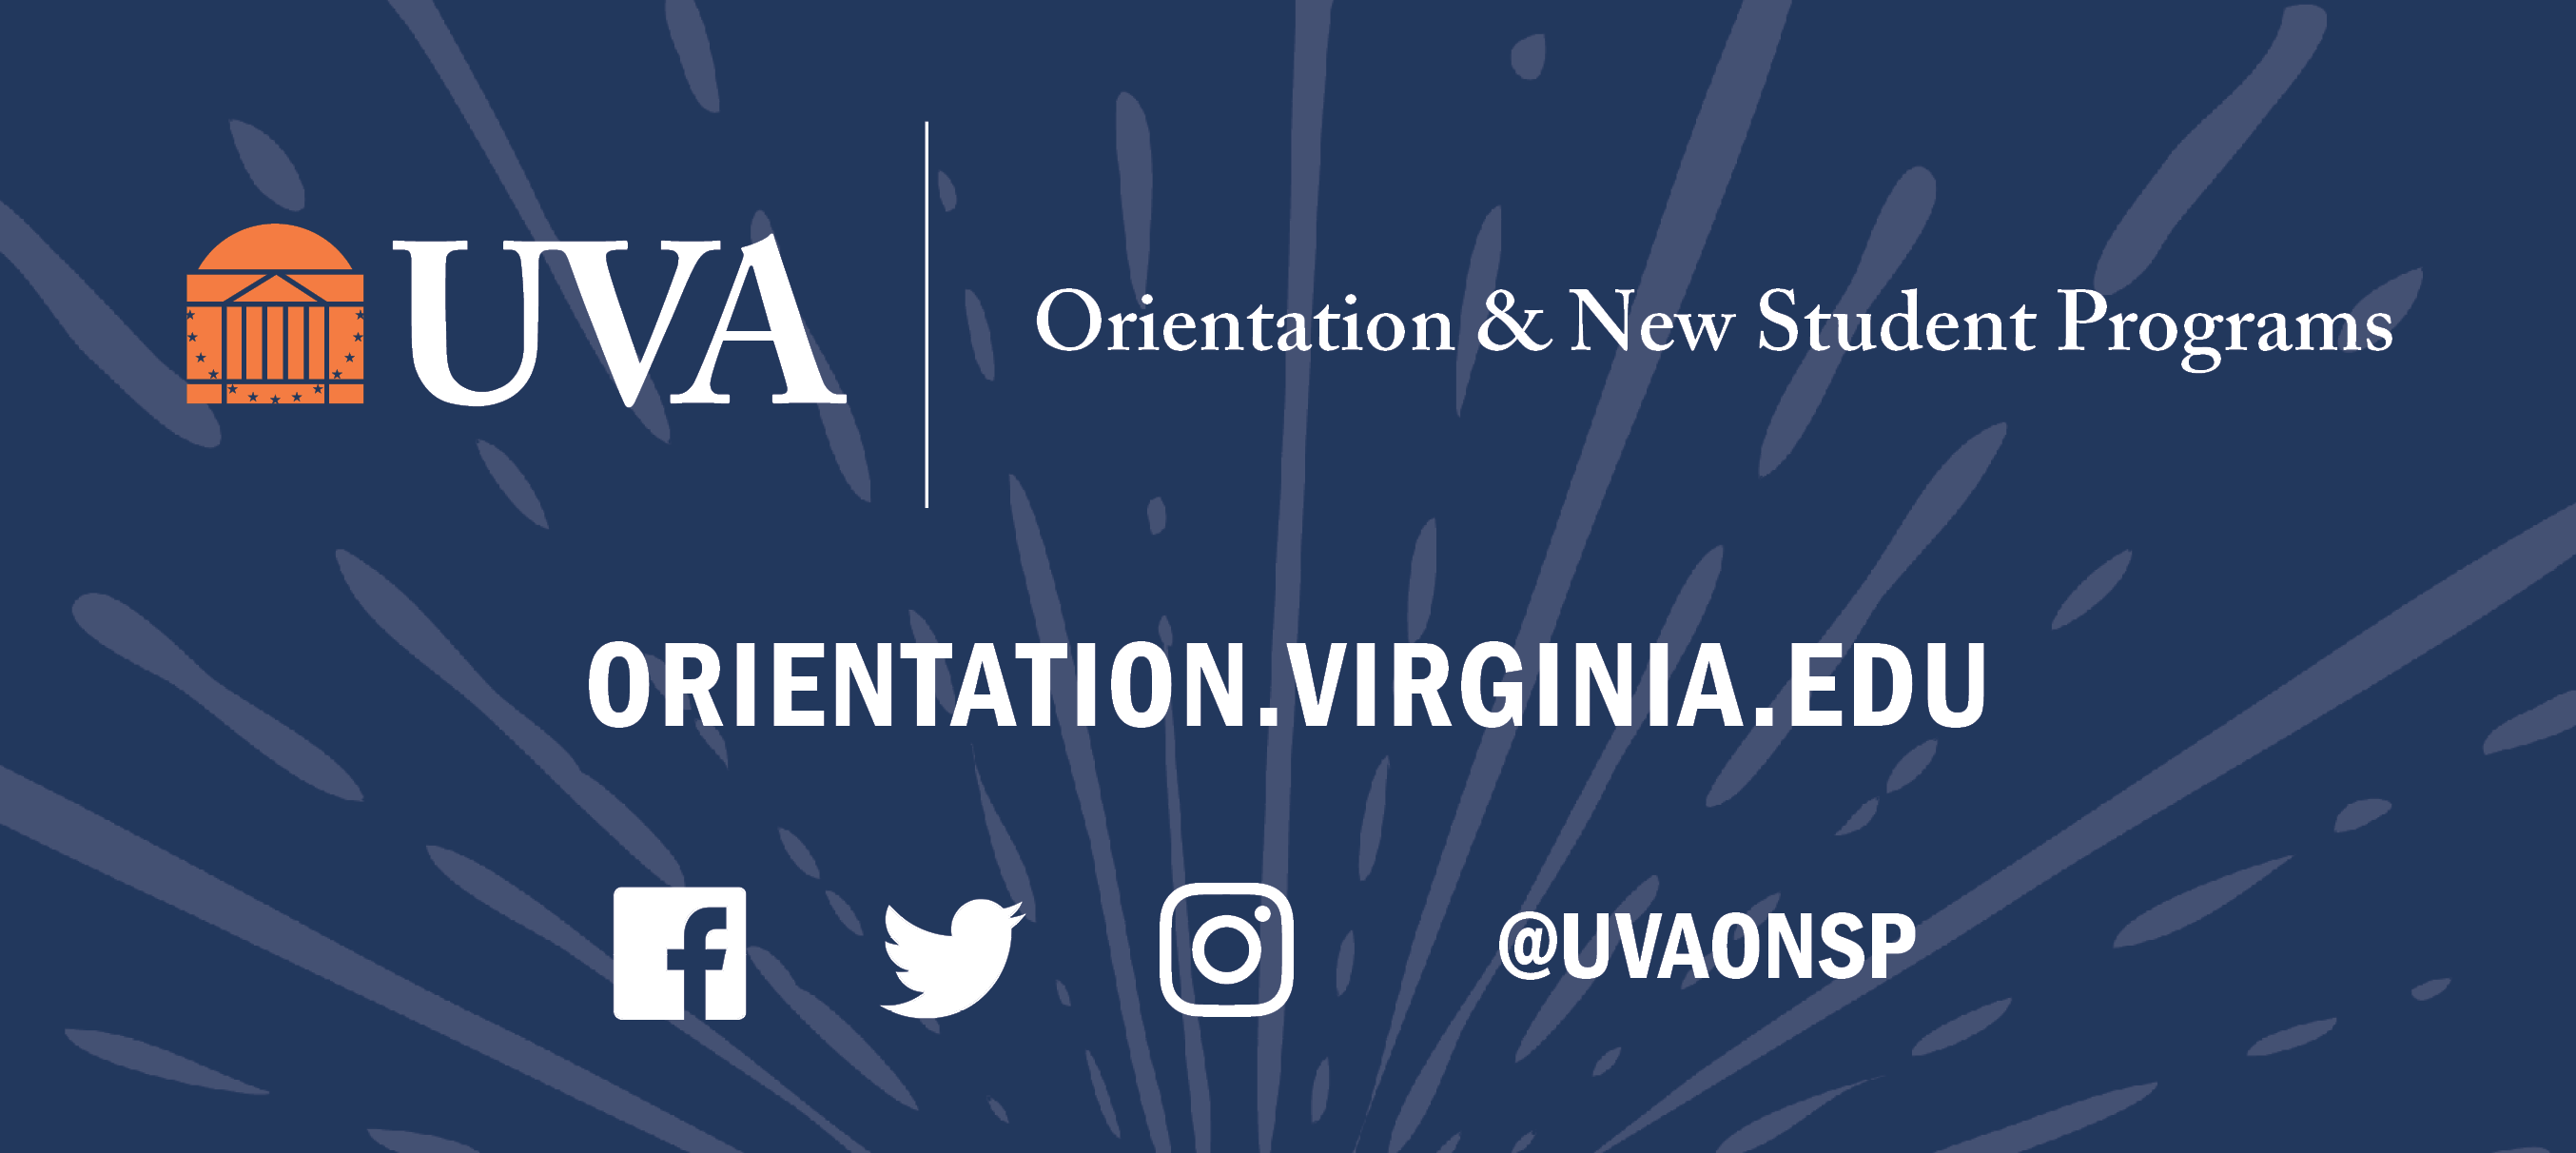 University of Virginia  | Orientation & New Student Programs | orientation.virginia.edu